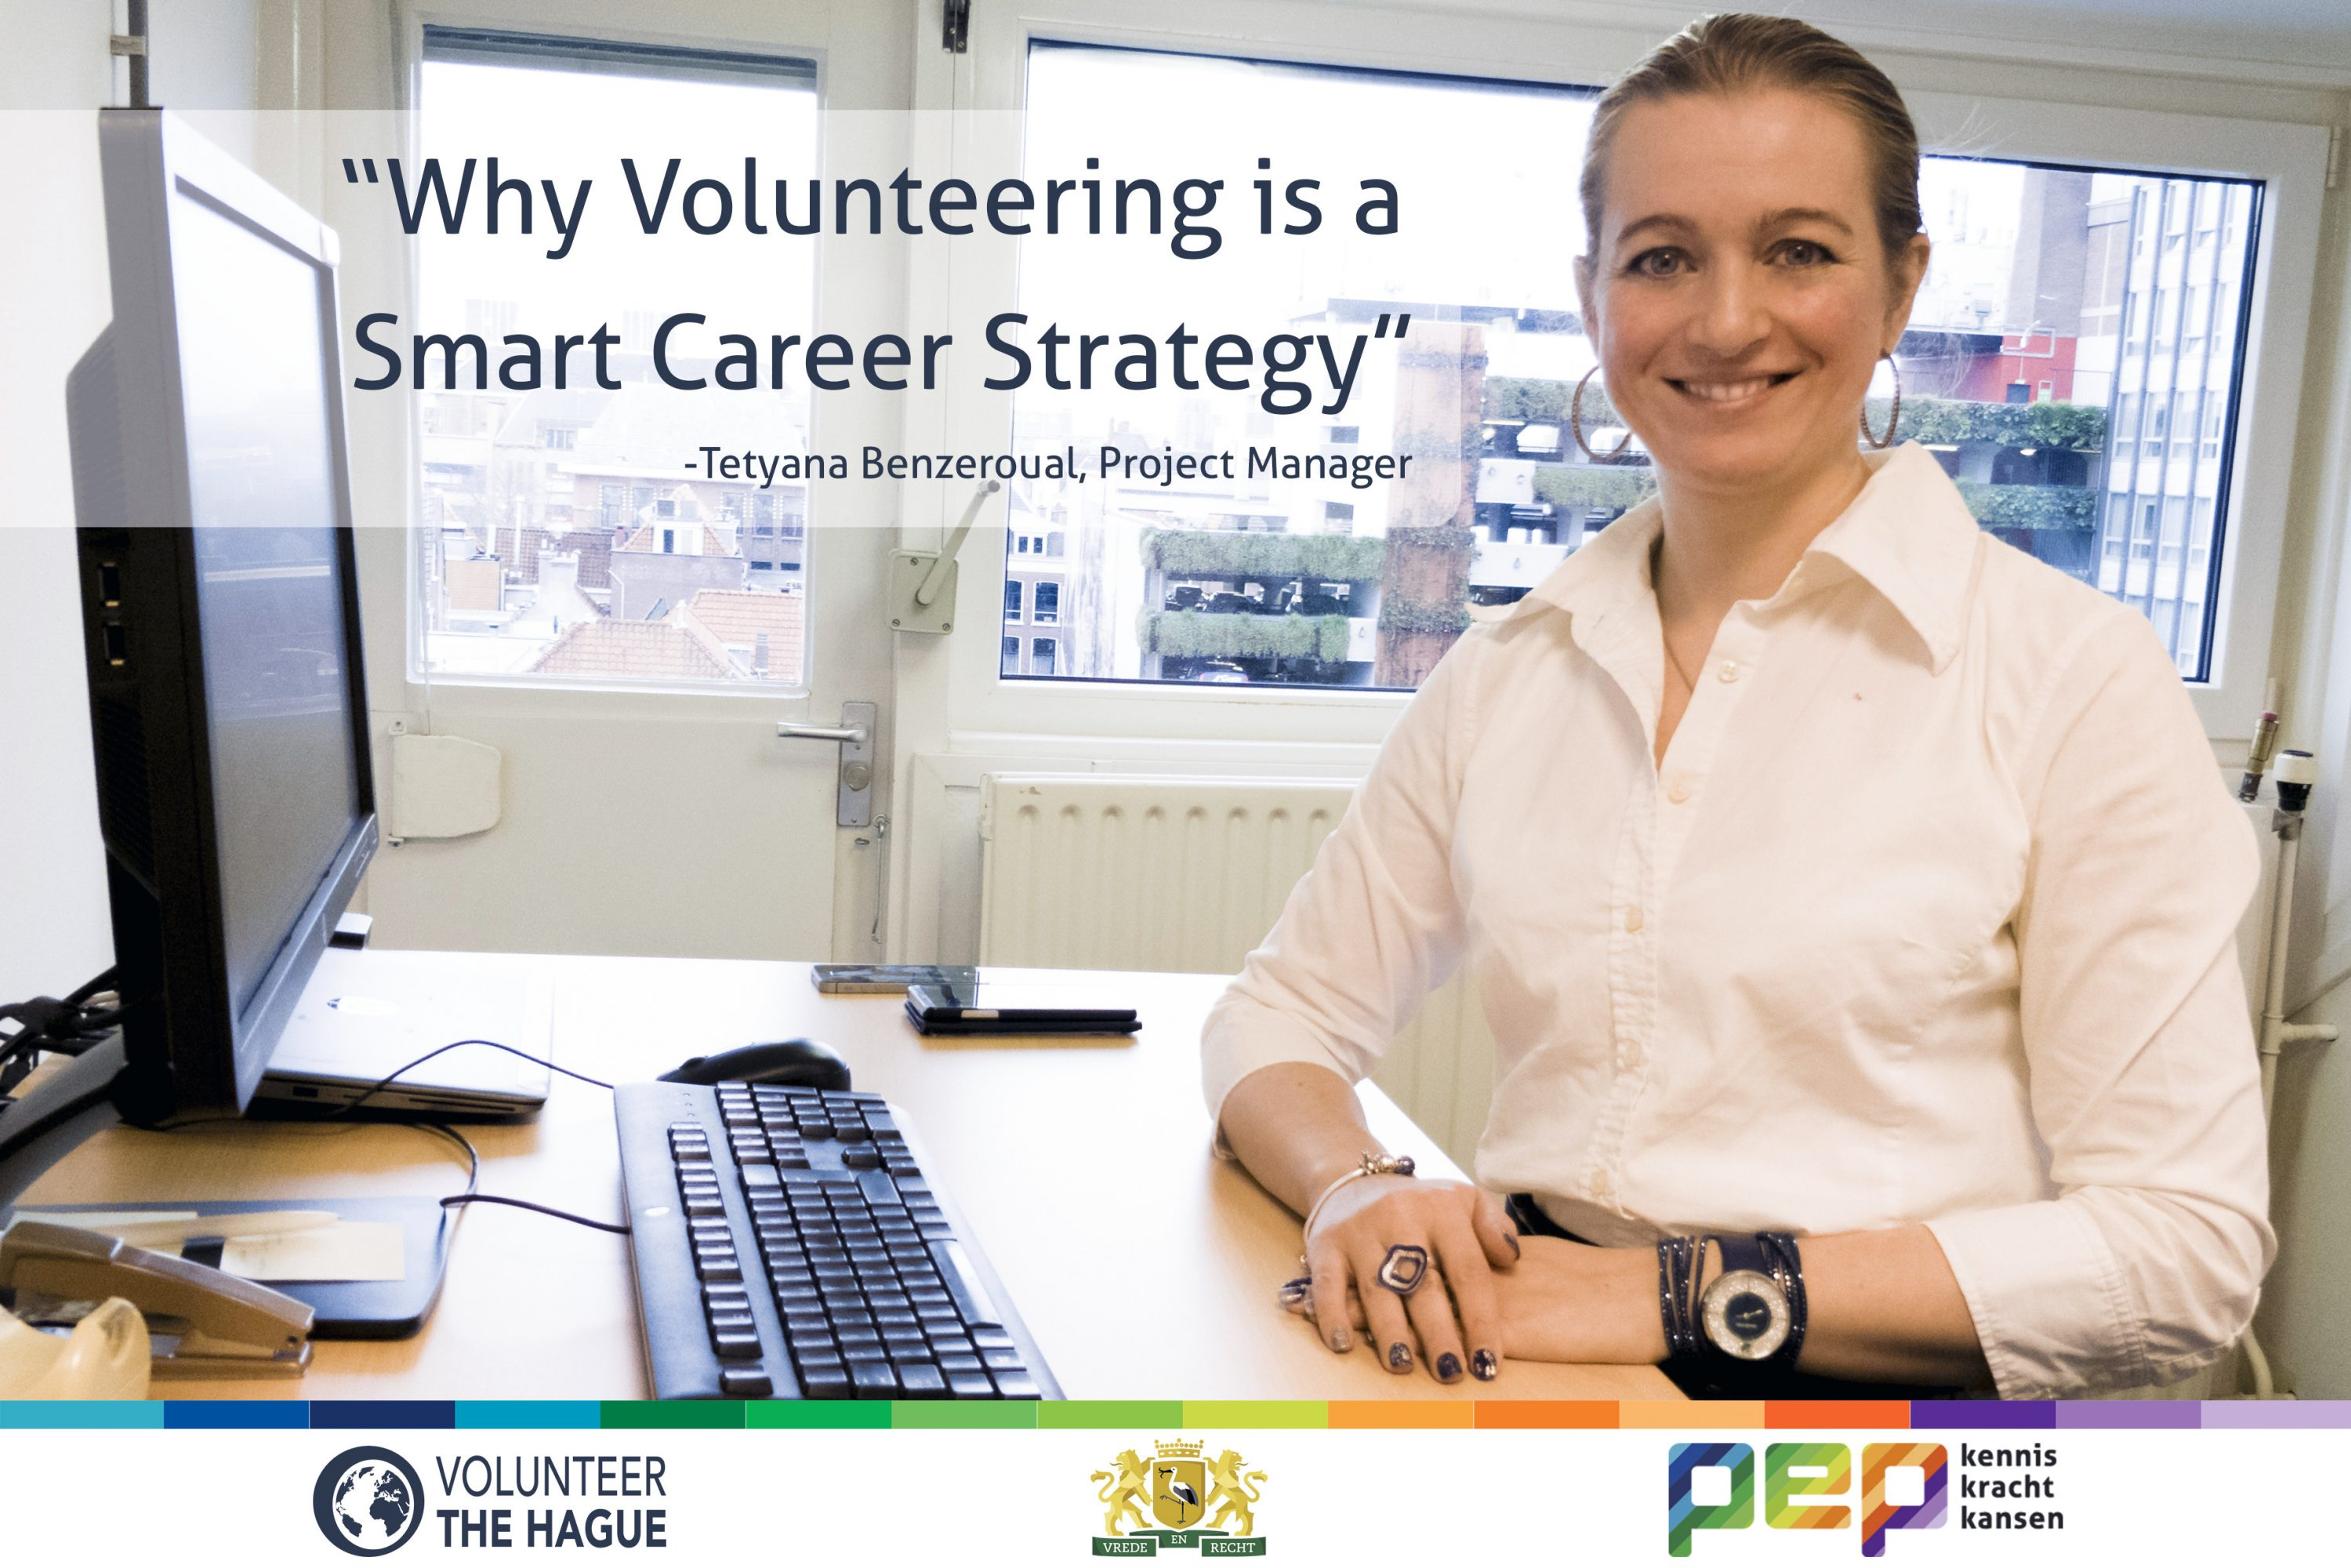 Why Volunteering is a Smart Career Strategy